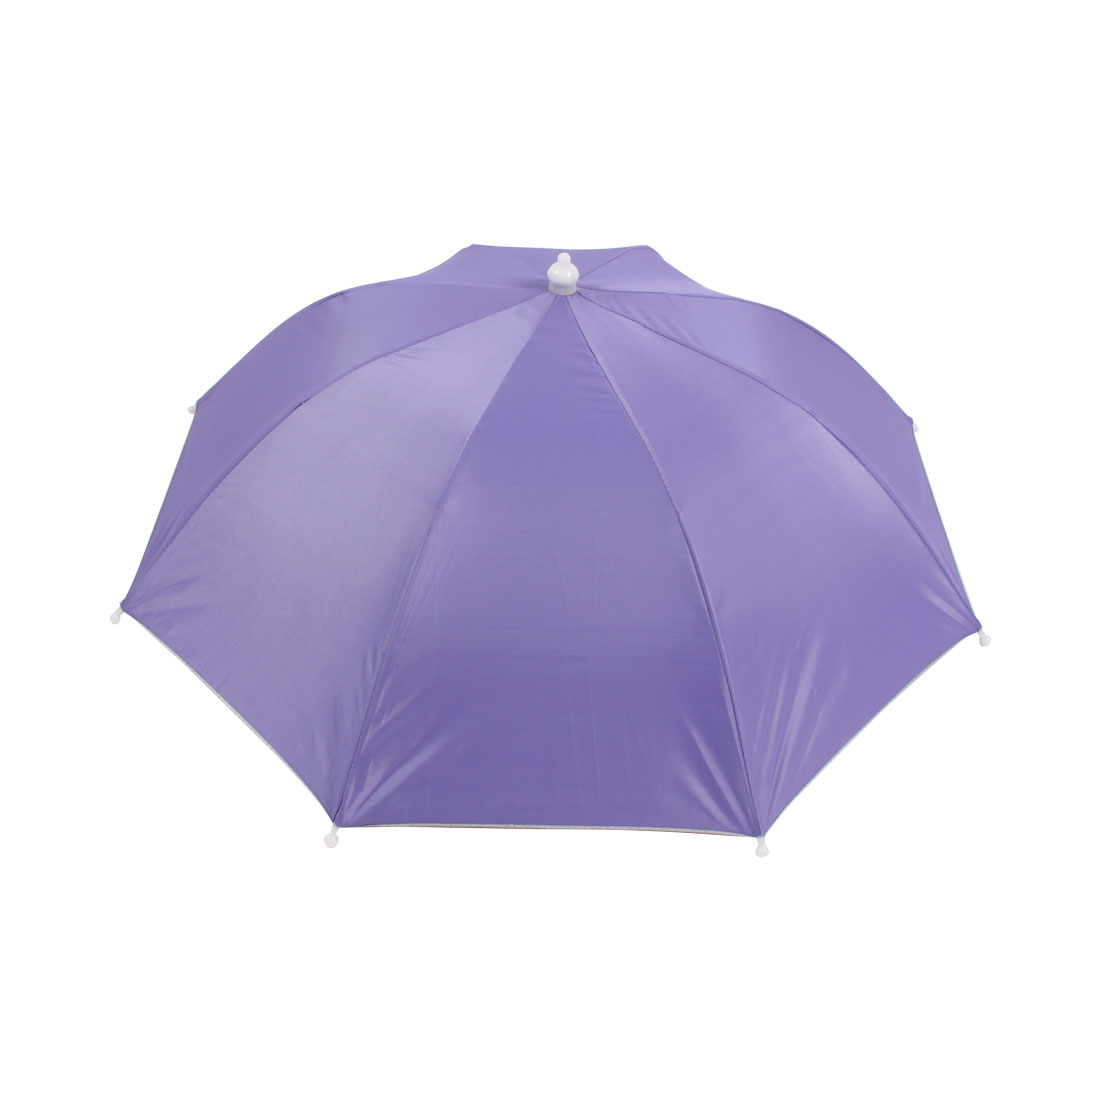 Fishing Camping Hands Free Light Purple Polyester Umbrella Hat Cap